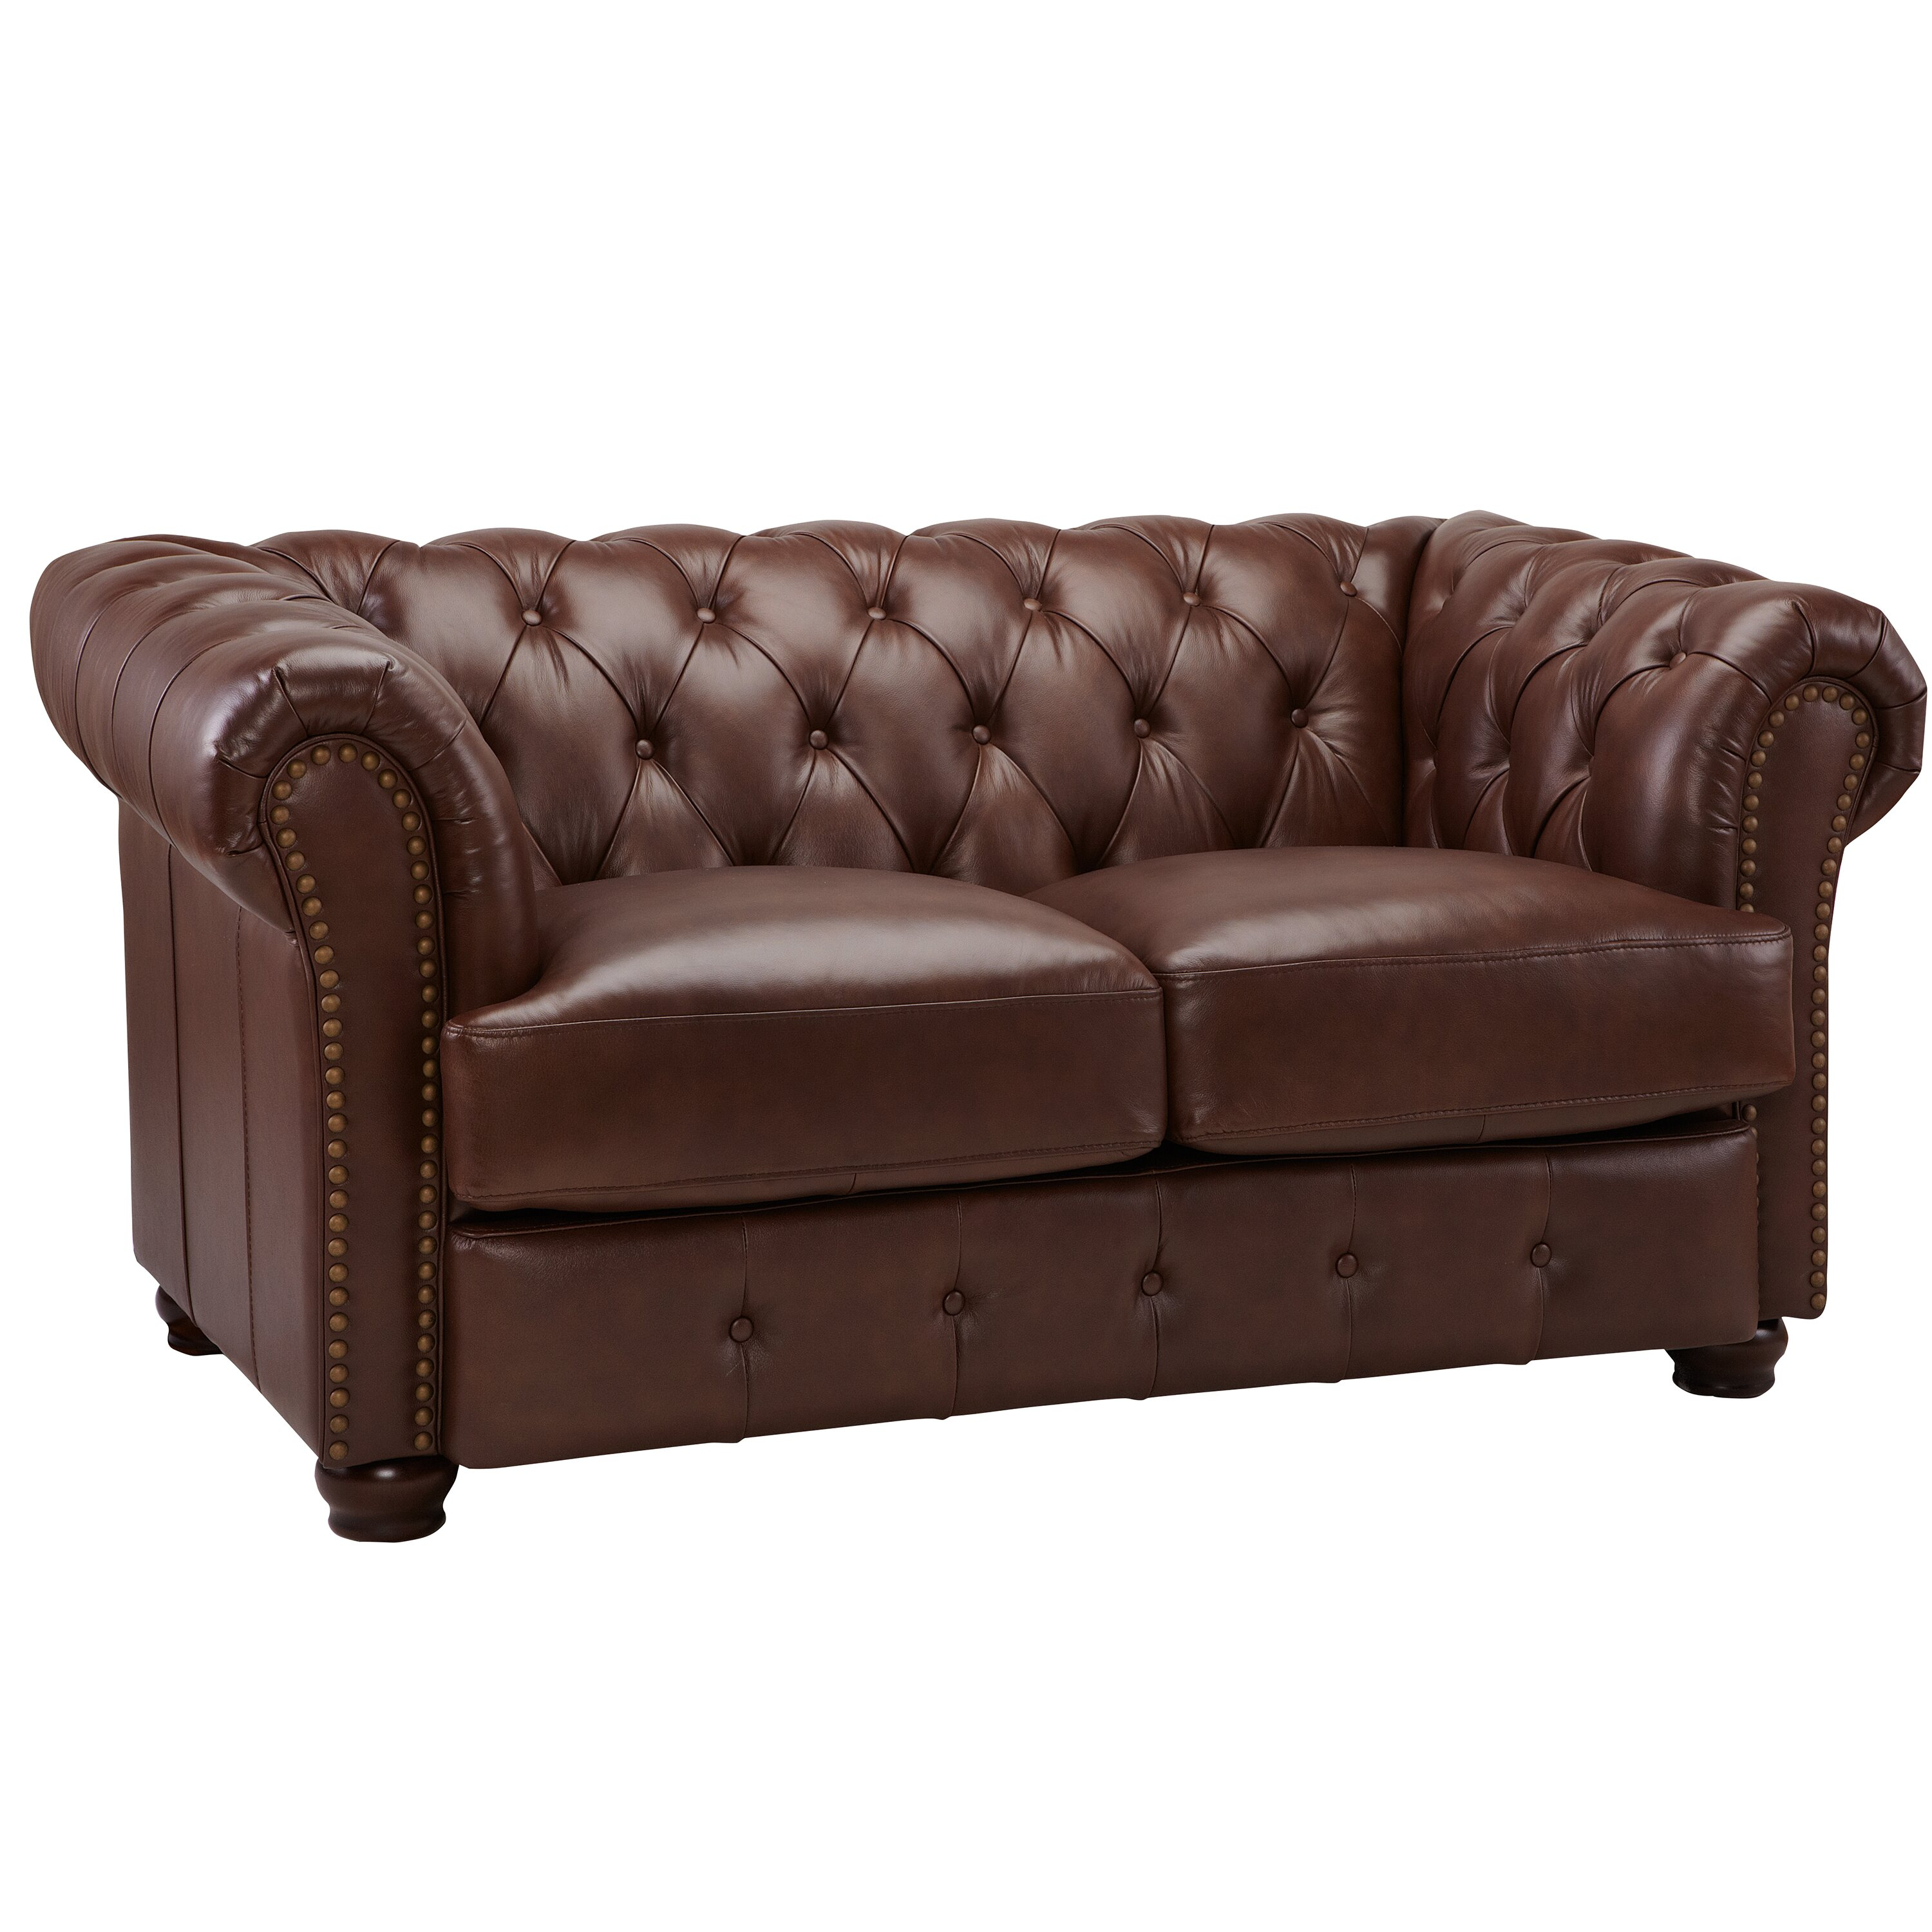 Decoro Decoro Off White Leather Sofa Sofas: DLND DeCoro Barrister Stationary Leather Loveseat